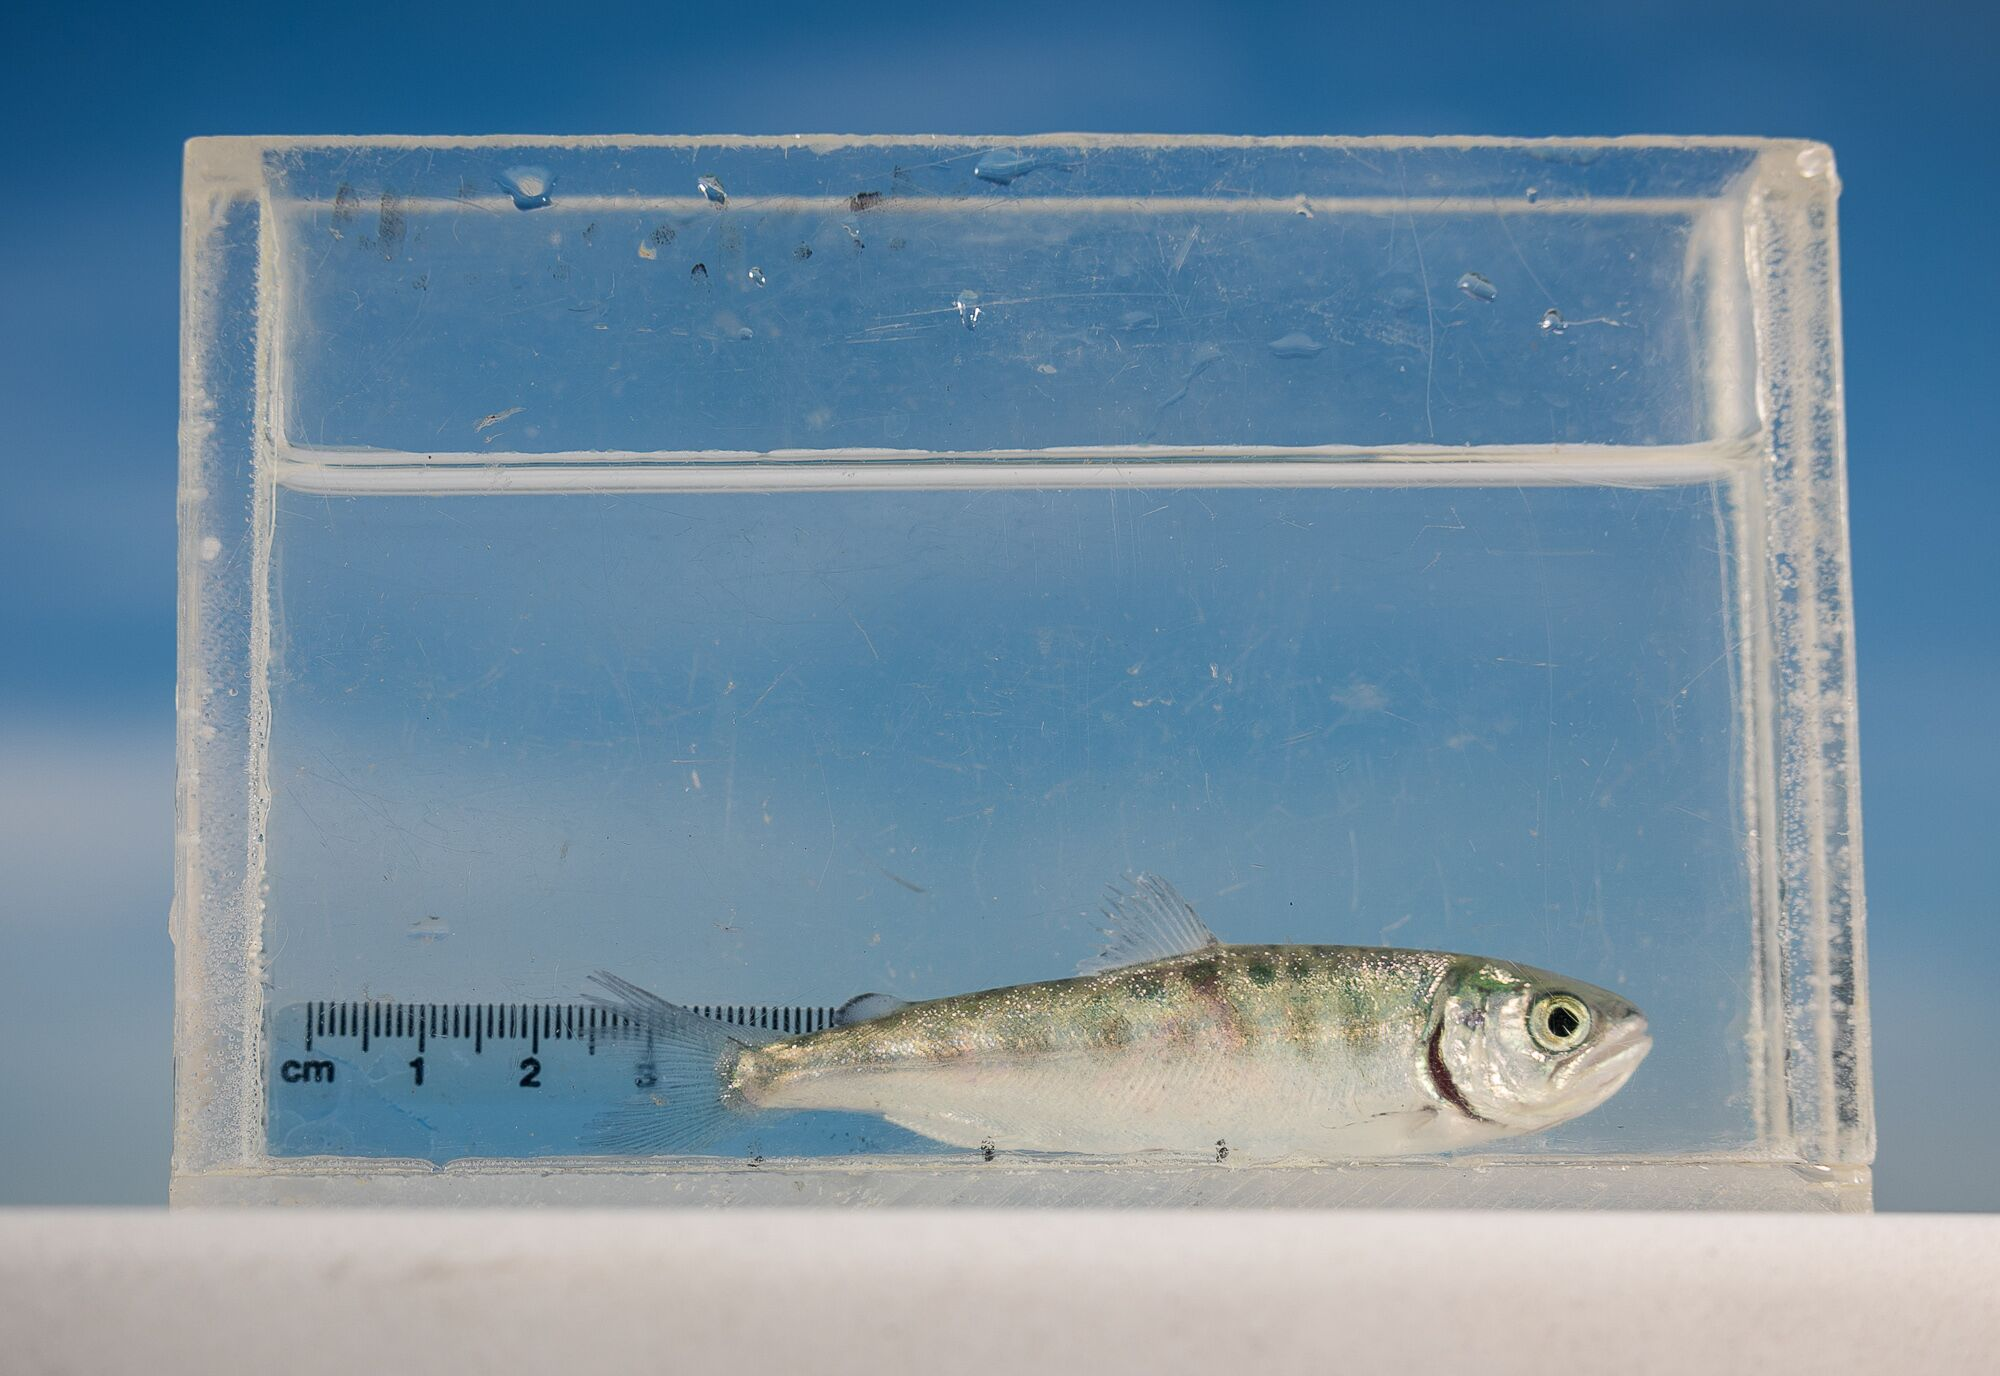 A Chinook salmon fry is measured at the Bodega Marine Laboratory at the University of California, Davis.